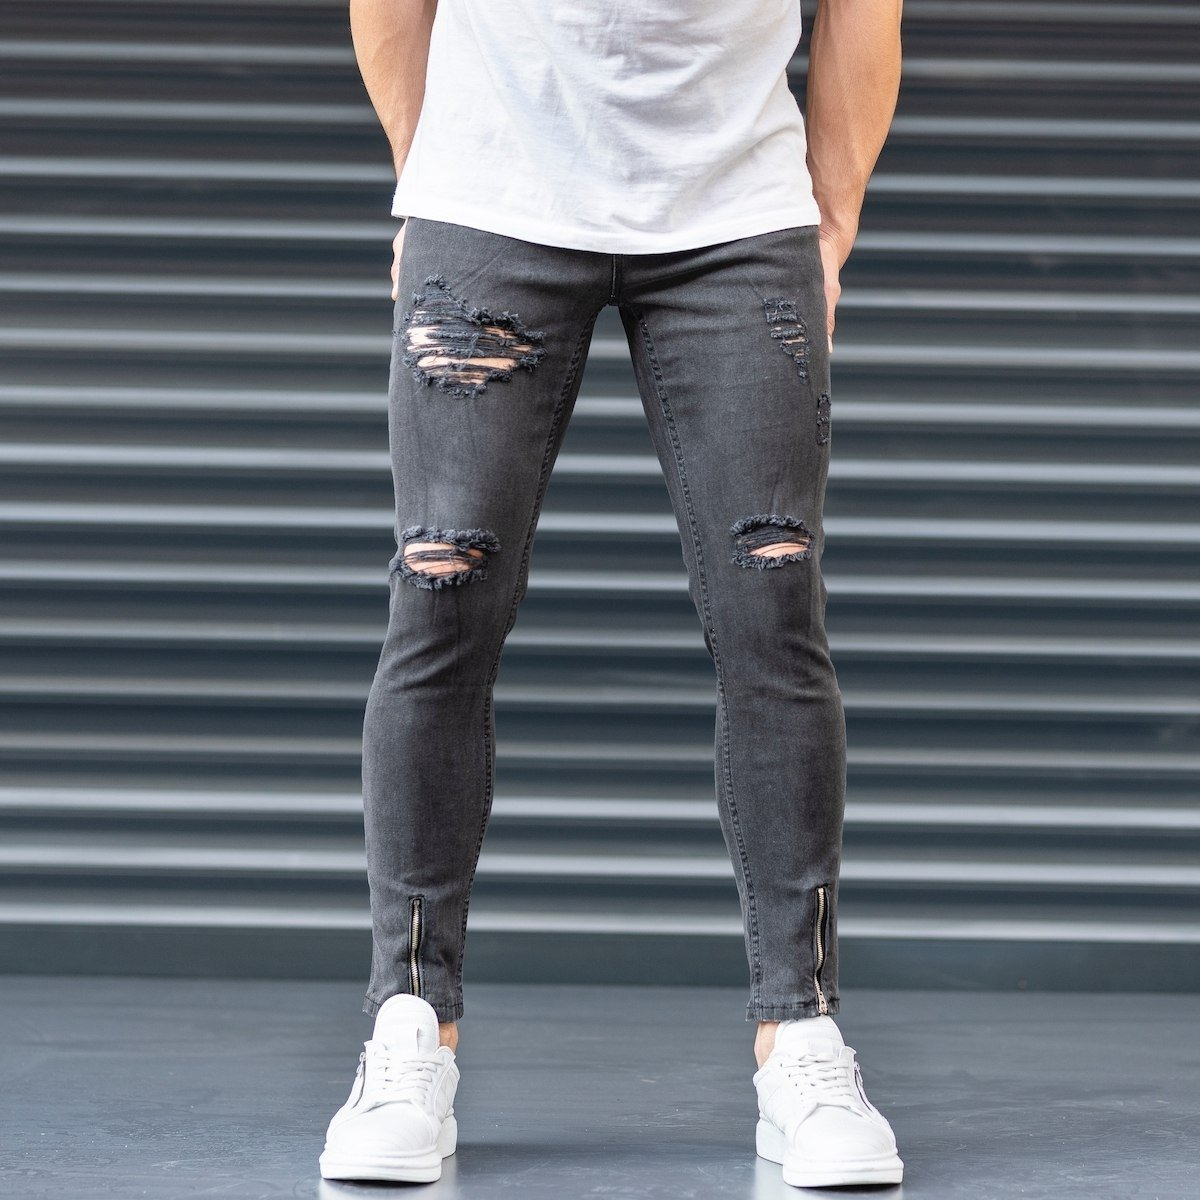 Men's  Jeans With Rips In Smoked Gray